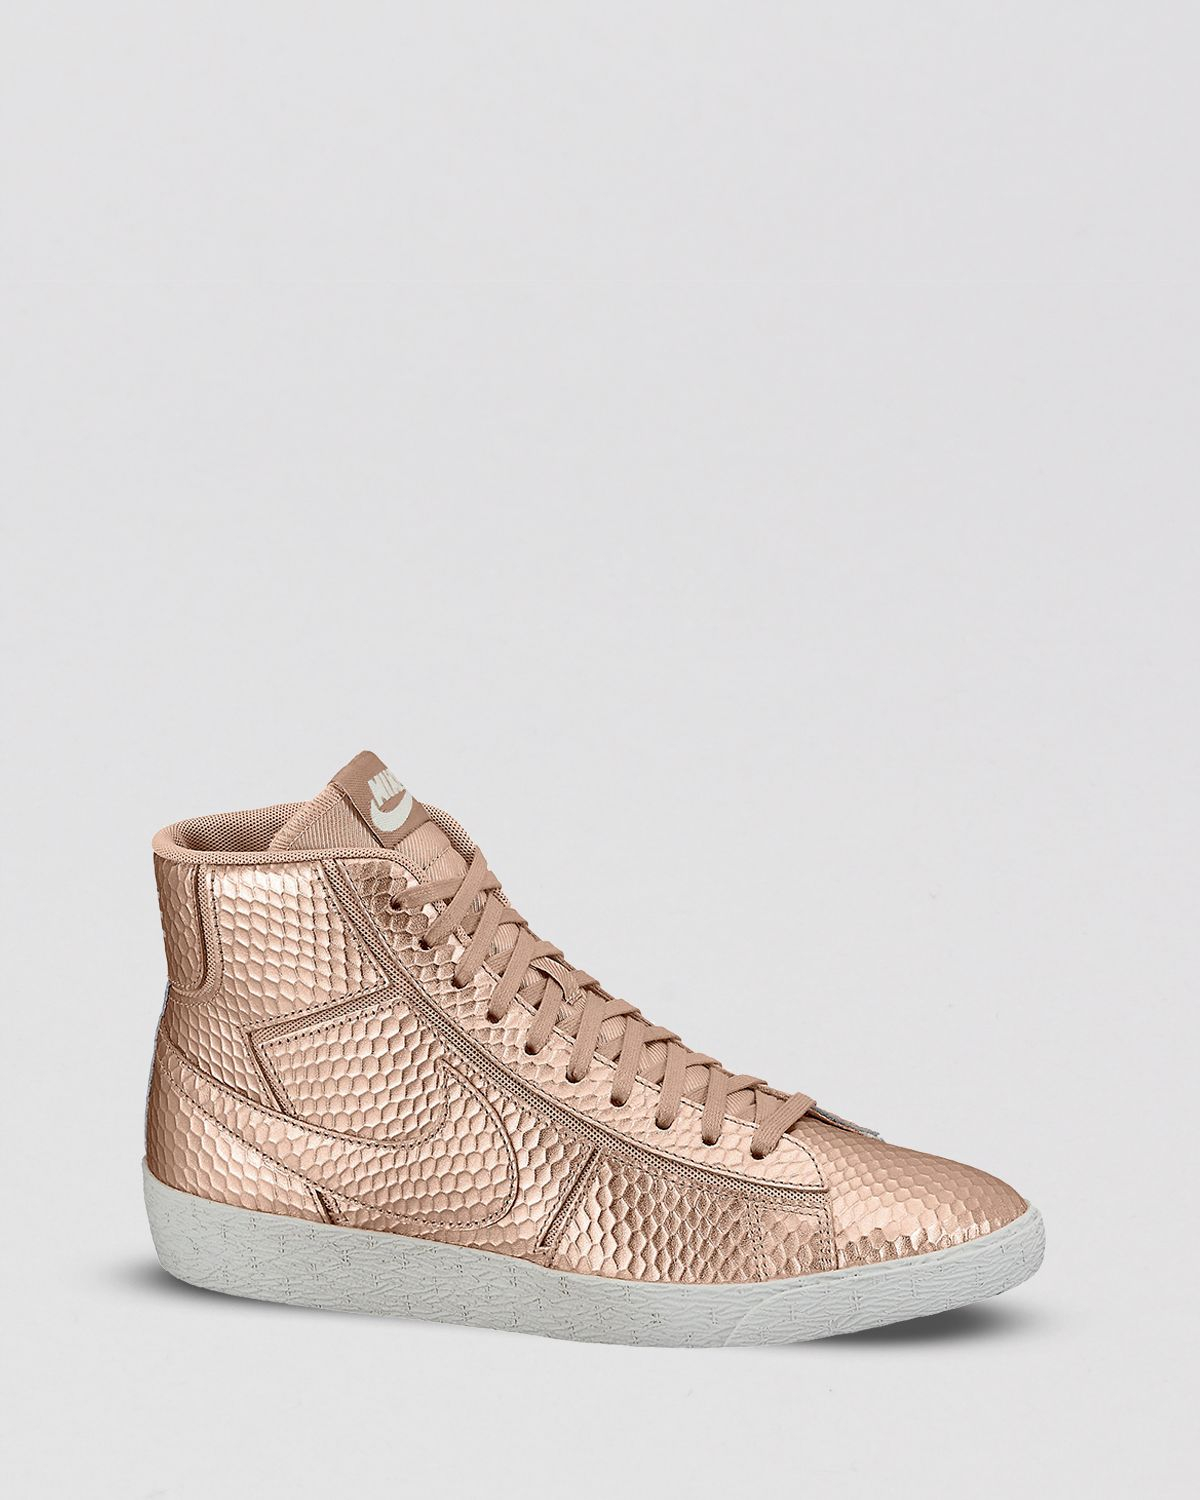 fc43d32fb537 Lyst - Nike Lace Up High Top Sneakers Womens Blazer Mid Cutout in ...